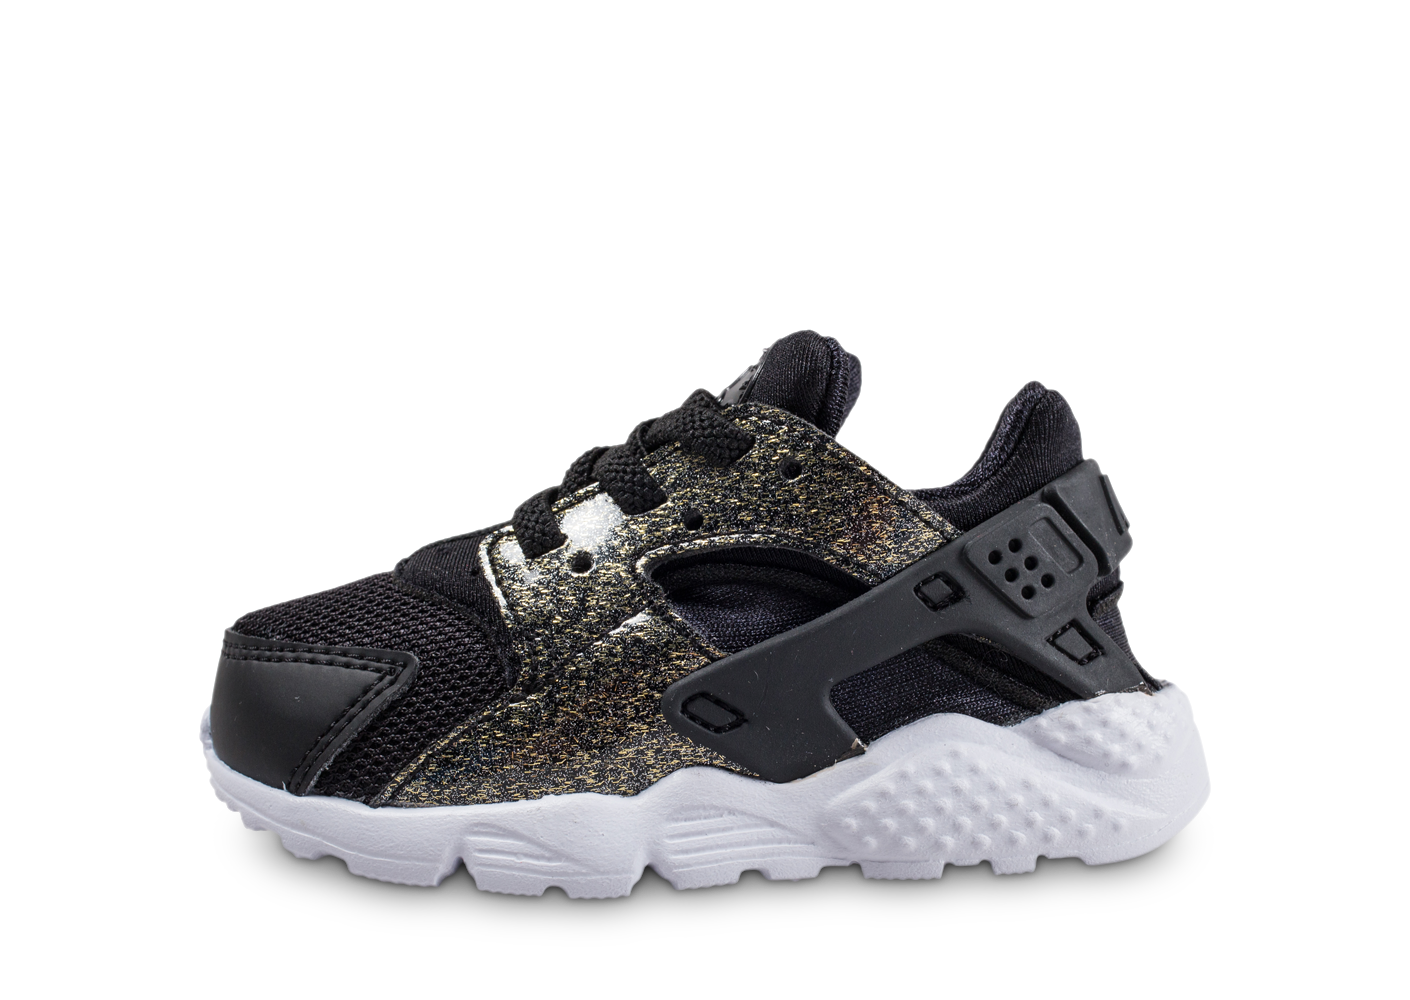 Nike Air Huarache Run Bébé Noire Et Or Baskets